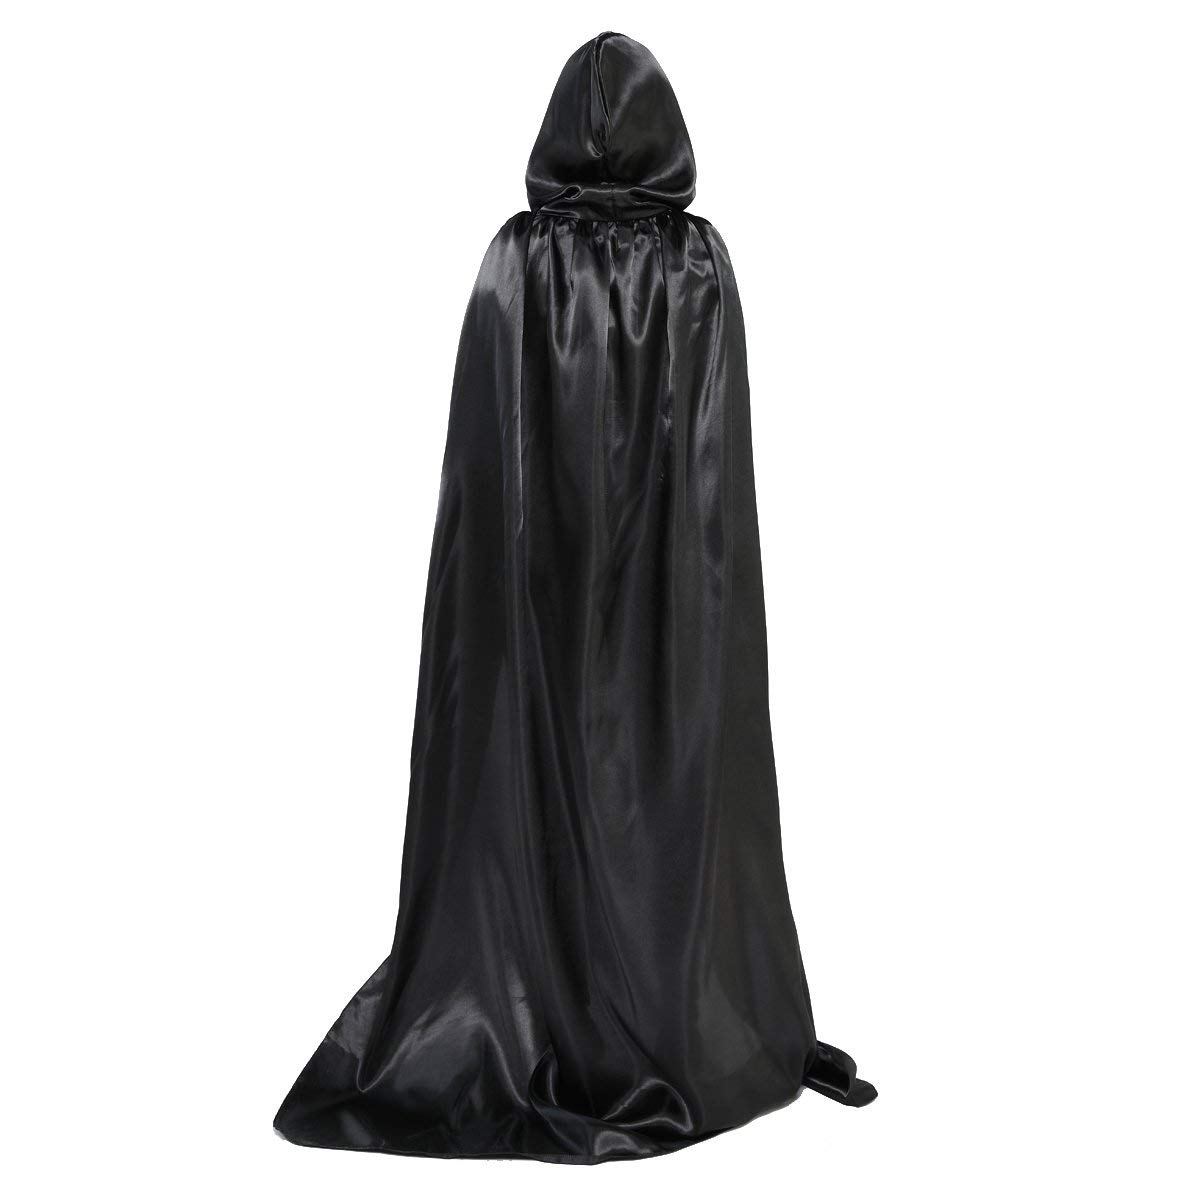 OLABB Hooded Cape Cloak with Hood Black Cloaks Costume Cosplay Party Role Play for Women/Men